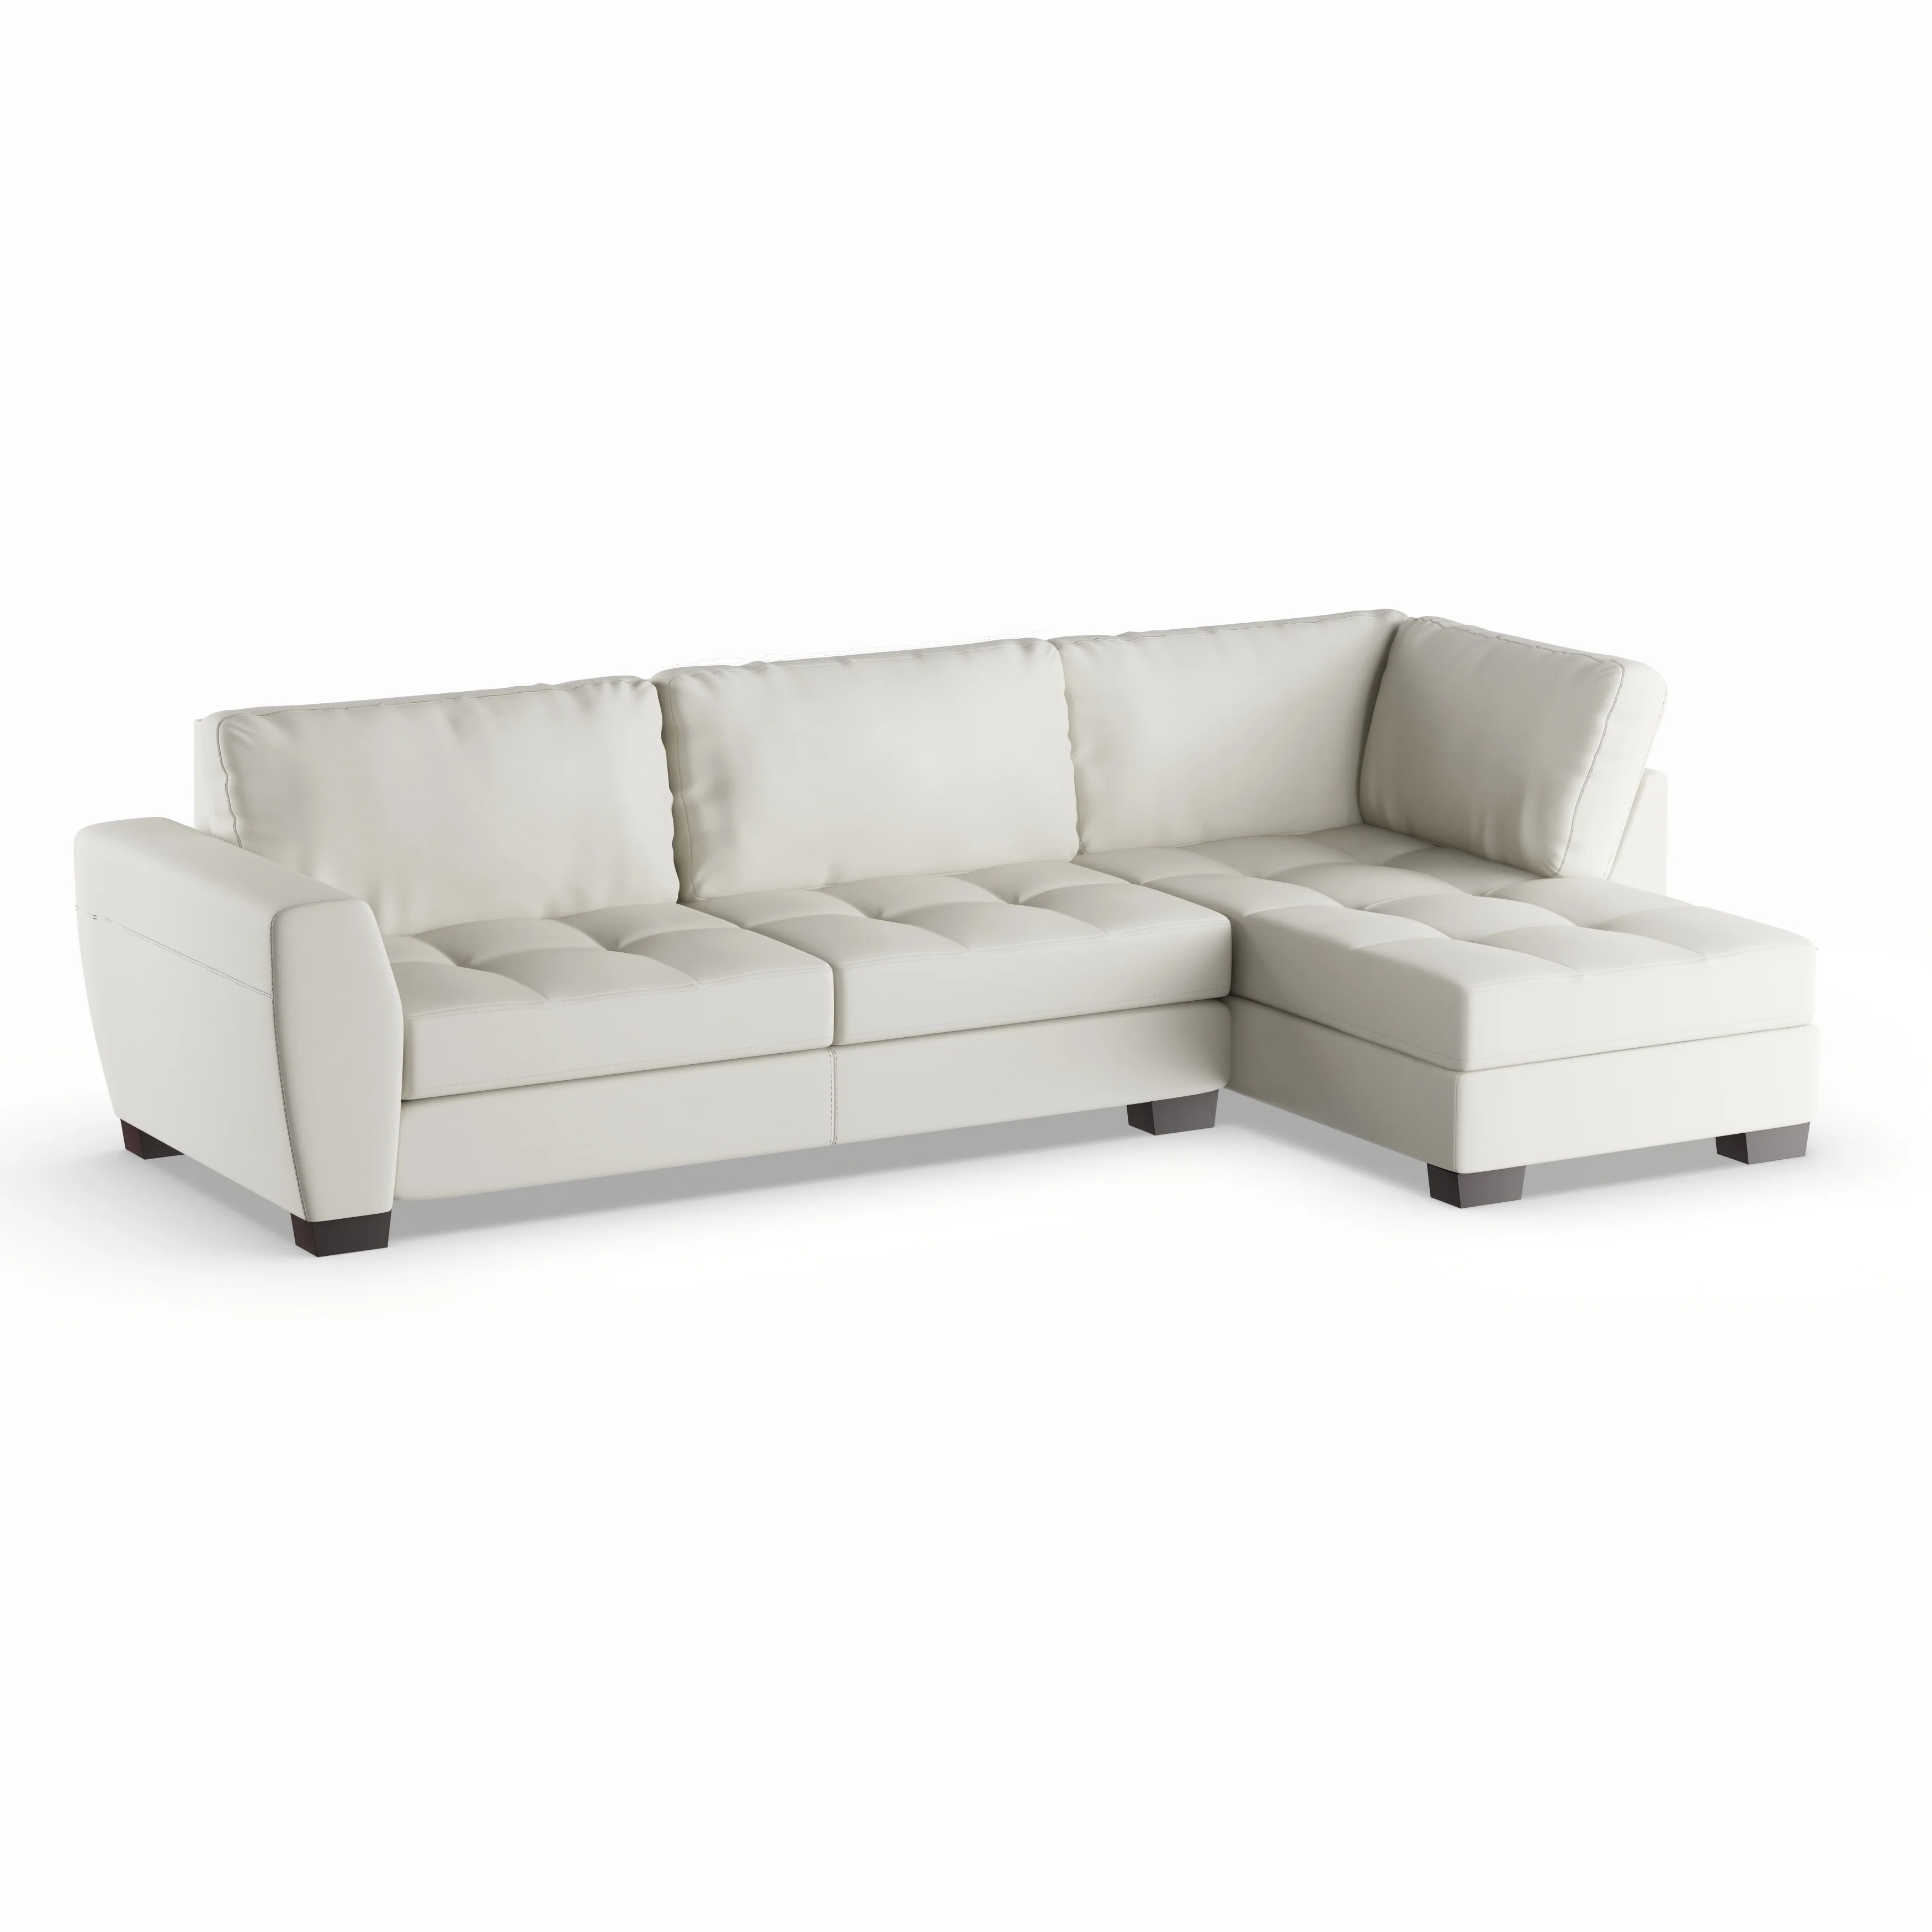 Strick Bolton Milles White Leather Modern Sectional Sofa Set With Right Facing Chaise